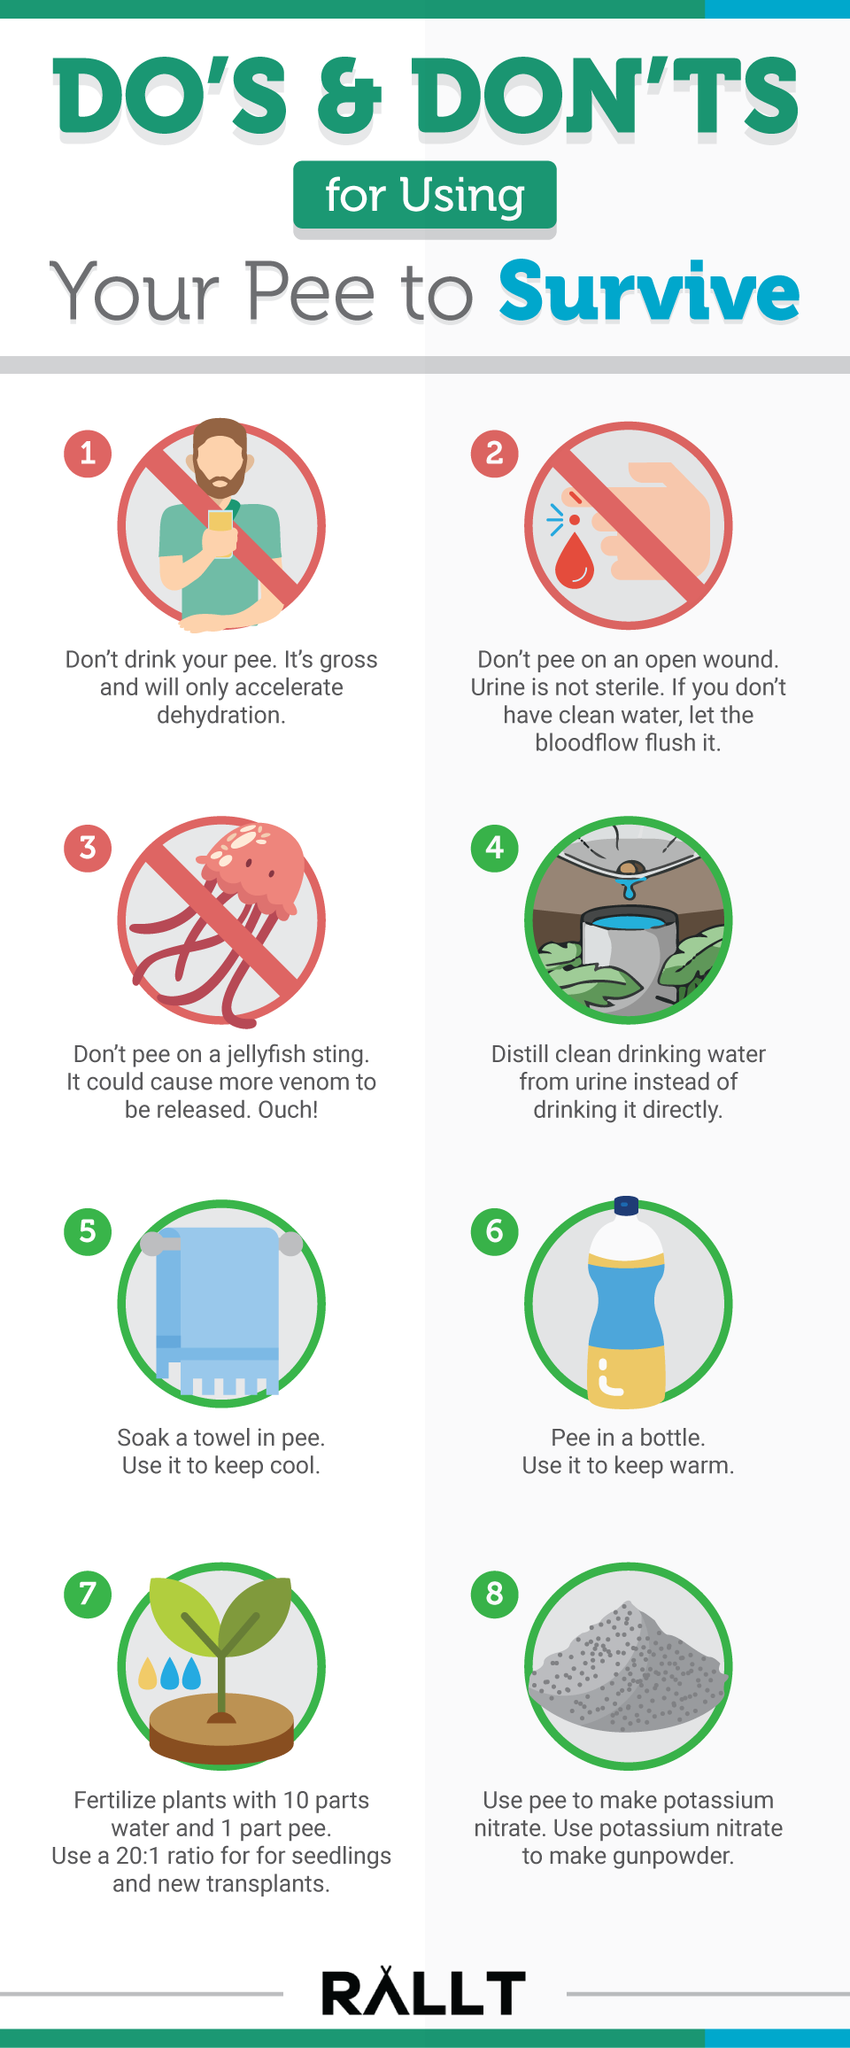 Dos & Don'ts for Using Your Pee to Survive